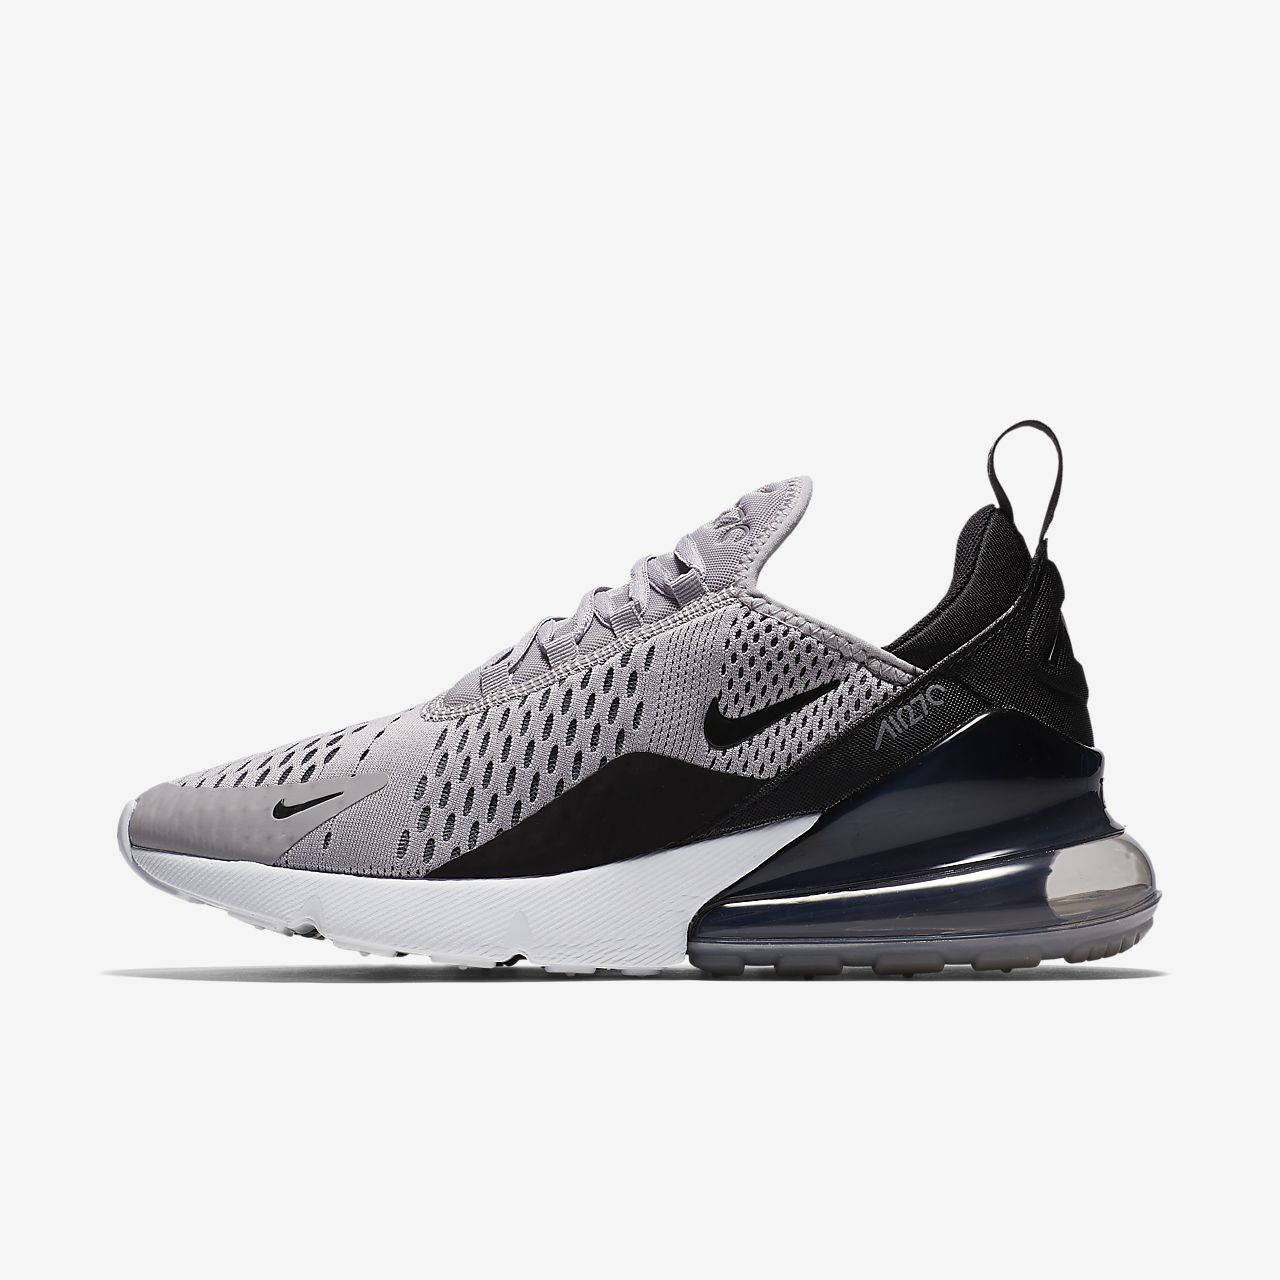 New Yeezy Release >> release date mujeres nike air max 270 gris 11026 22fc1